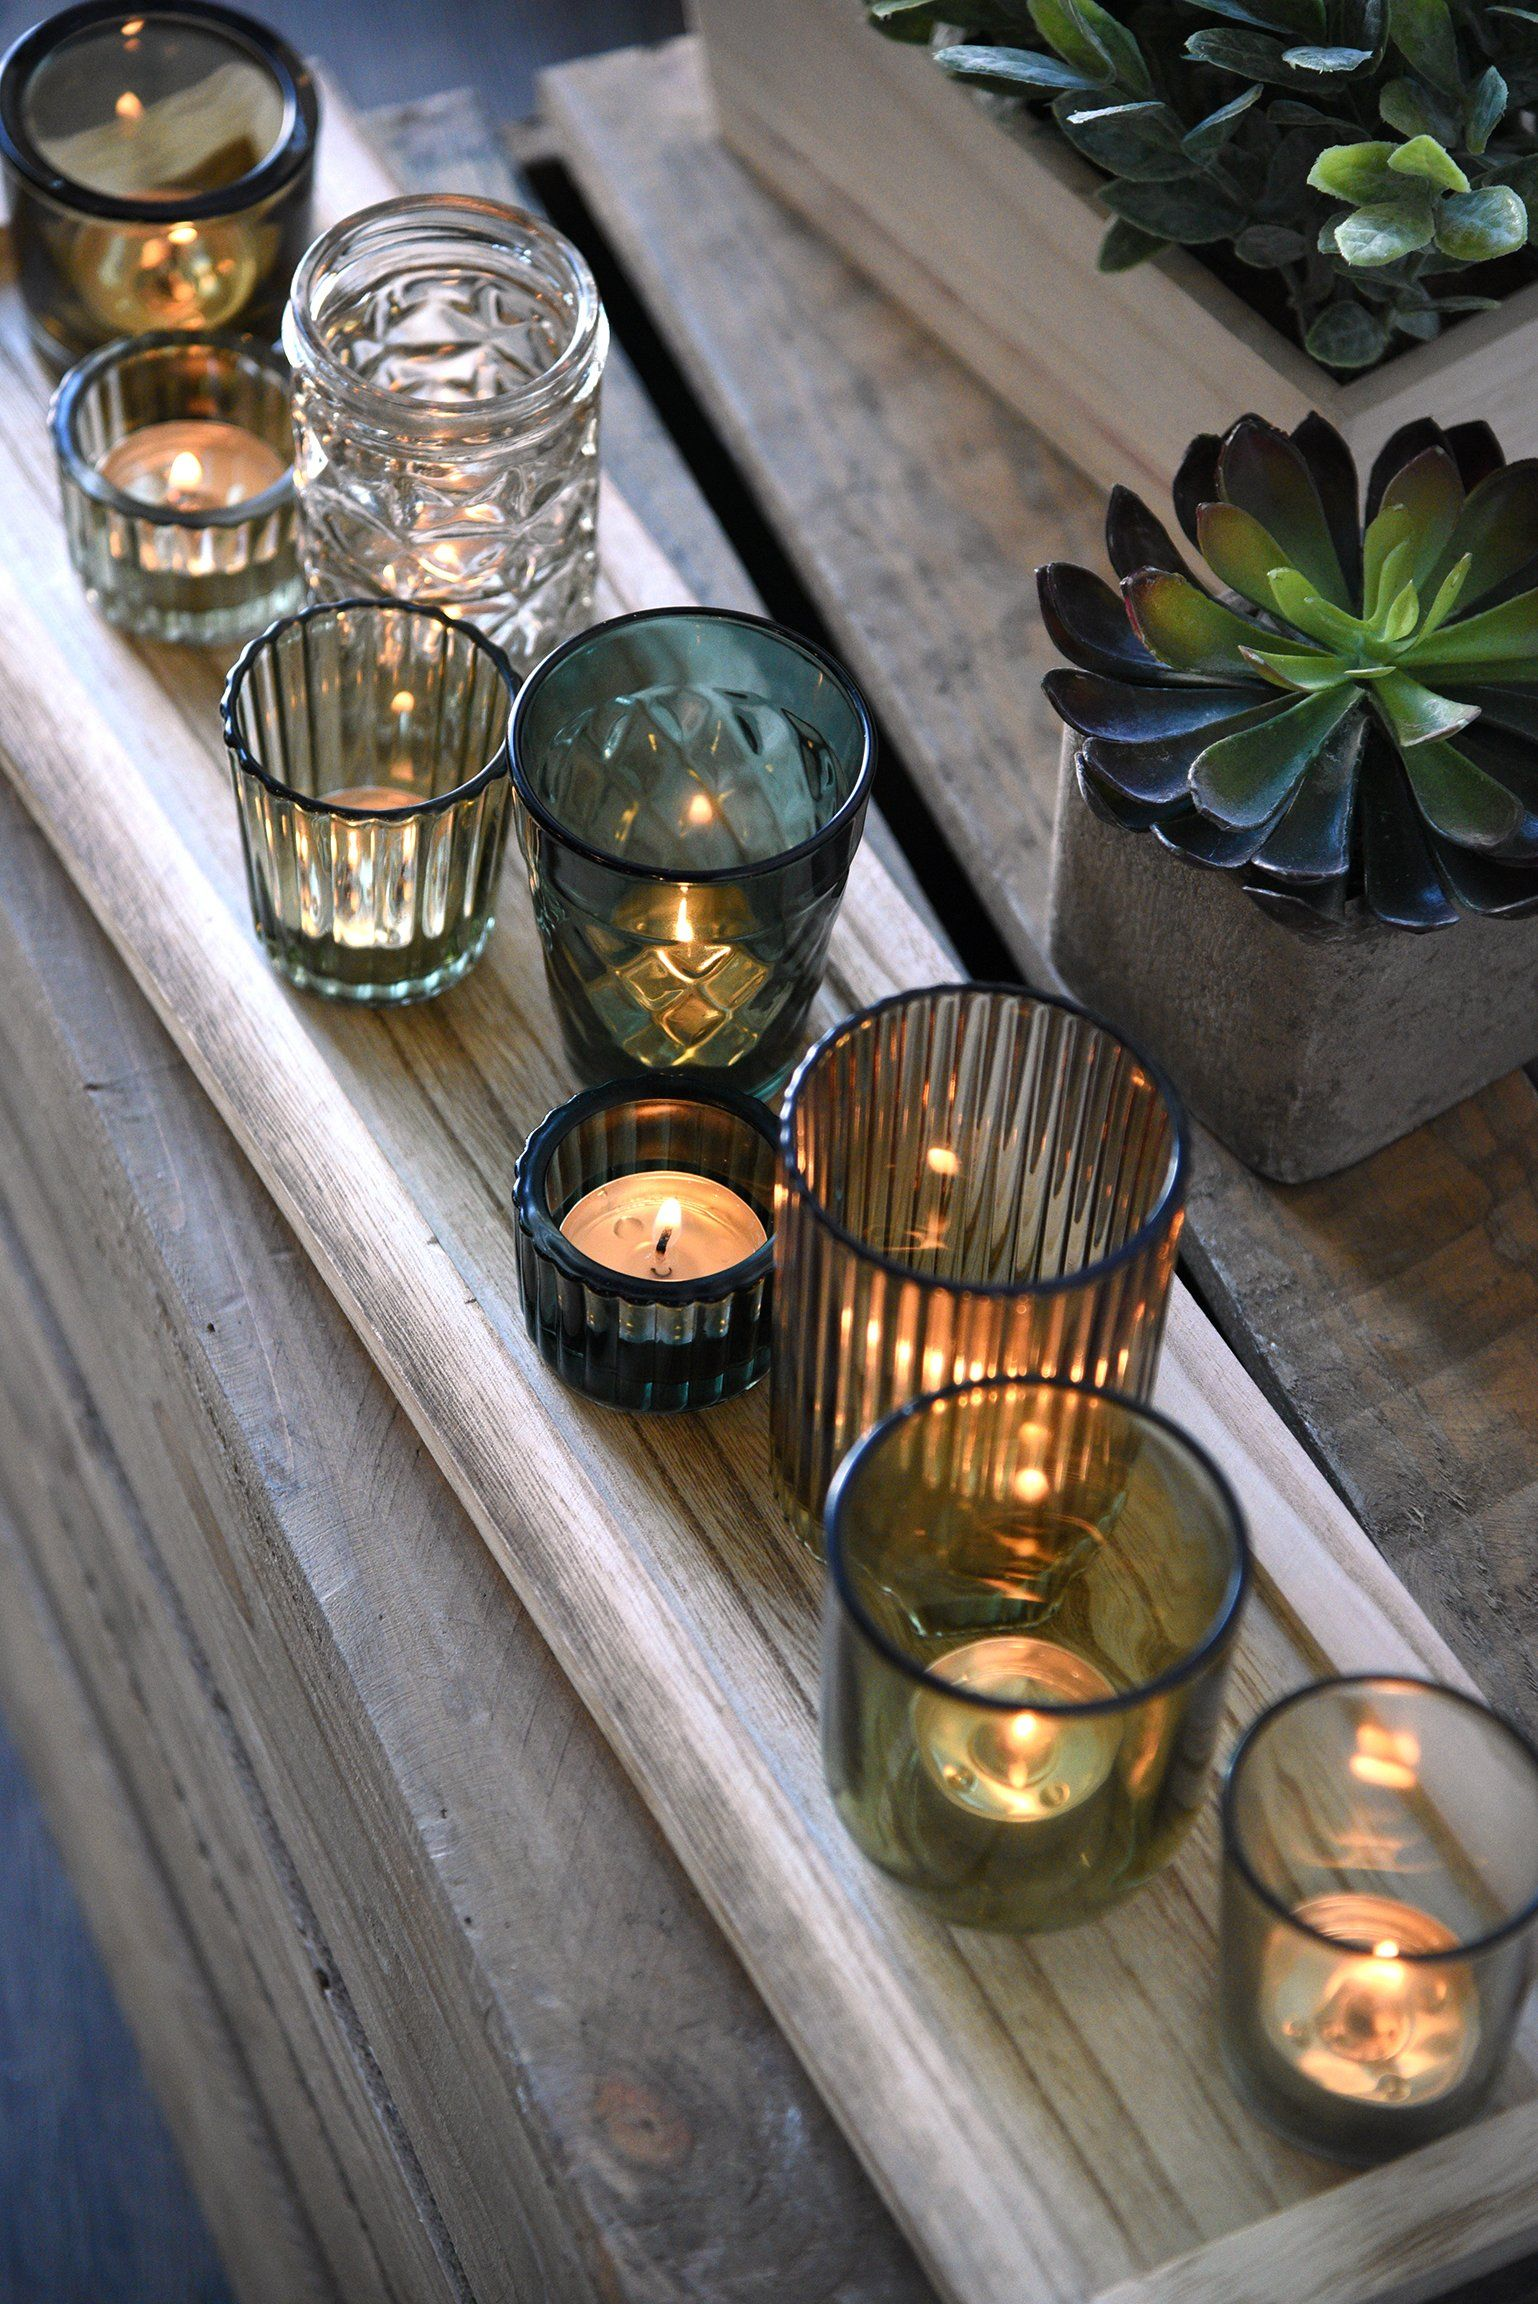 Green Glass Tealight Candle Holders With Wood Tray In 2021 Glass Tealight Candle Holders Tealight Candle Holders Tea Light Candles Glass tea light candle holder